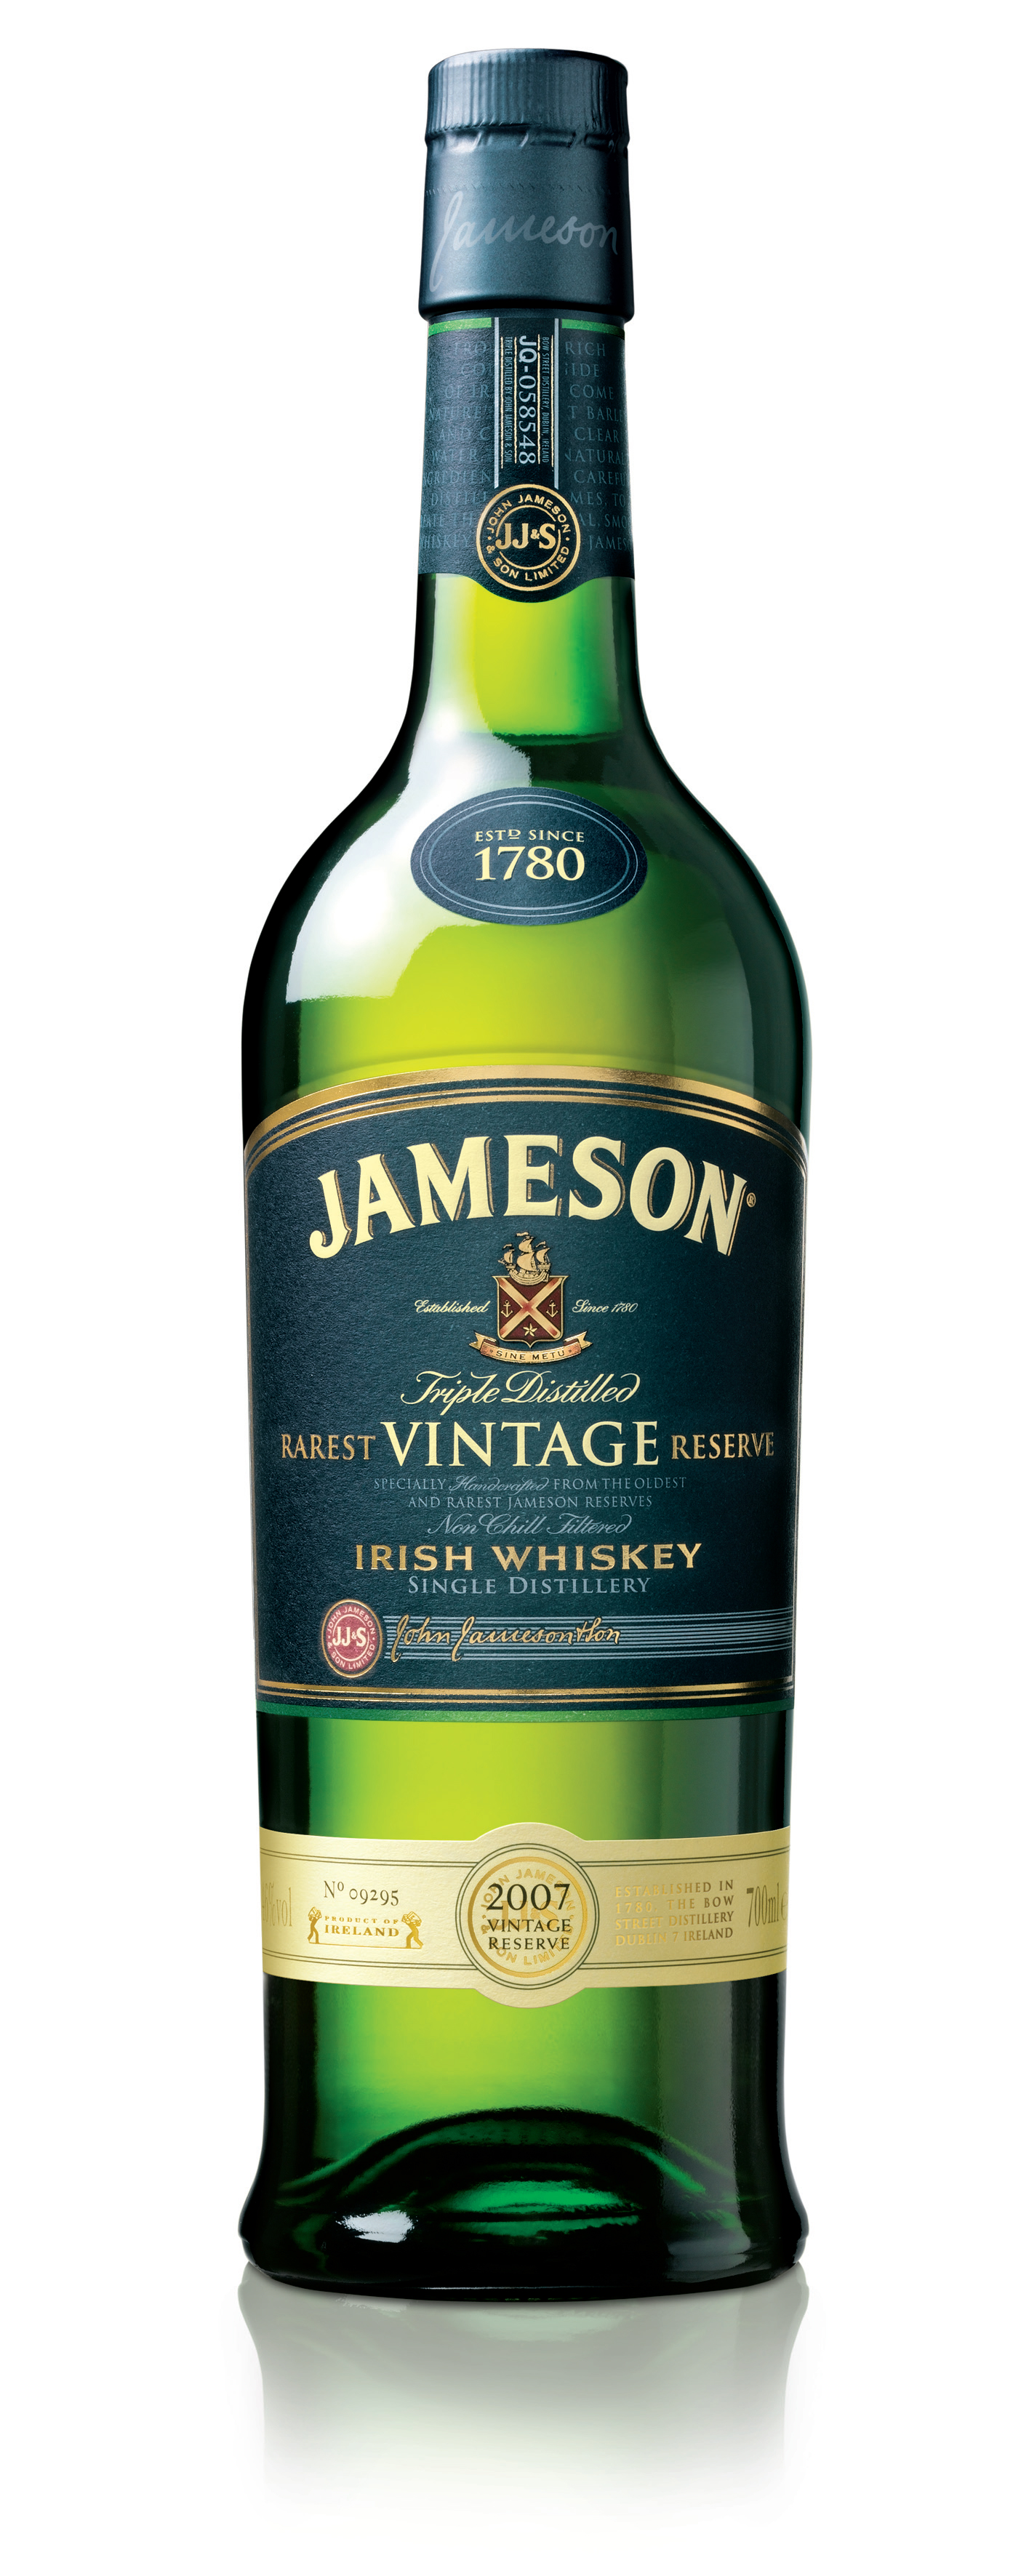 Jameson Irish Whiskey Tweet TastingJameson Irish Whiskey Bottle